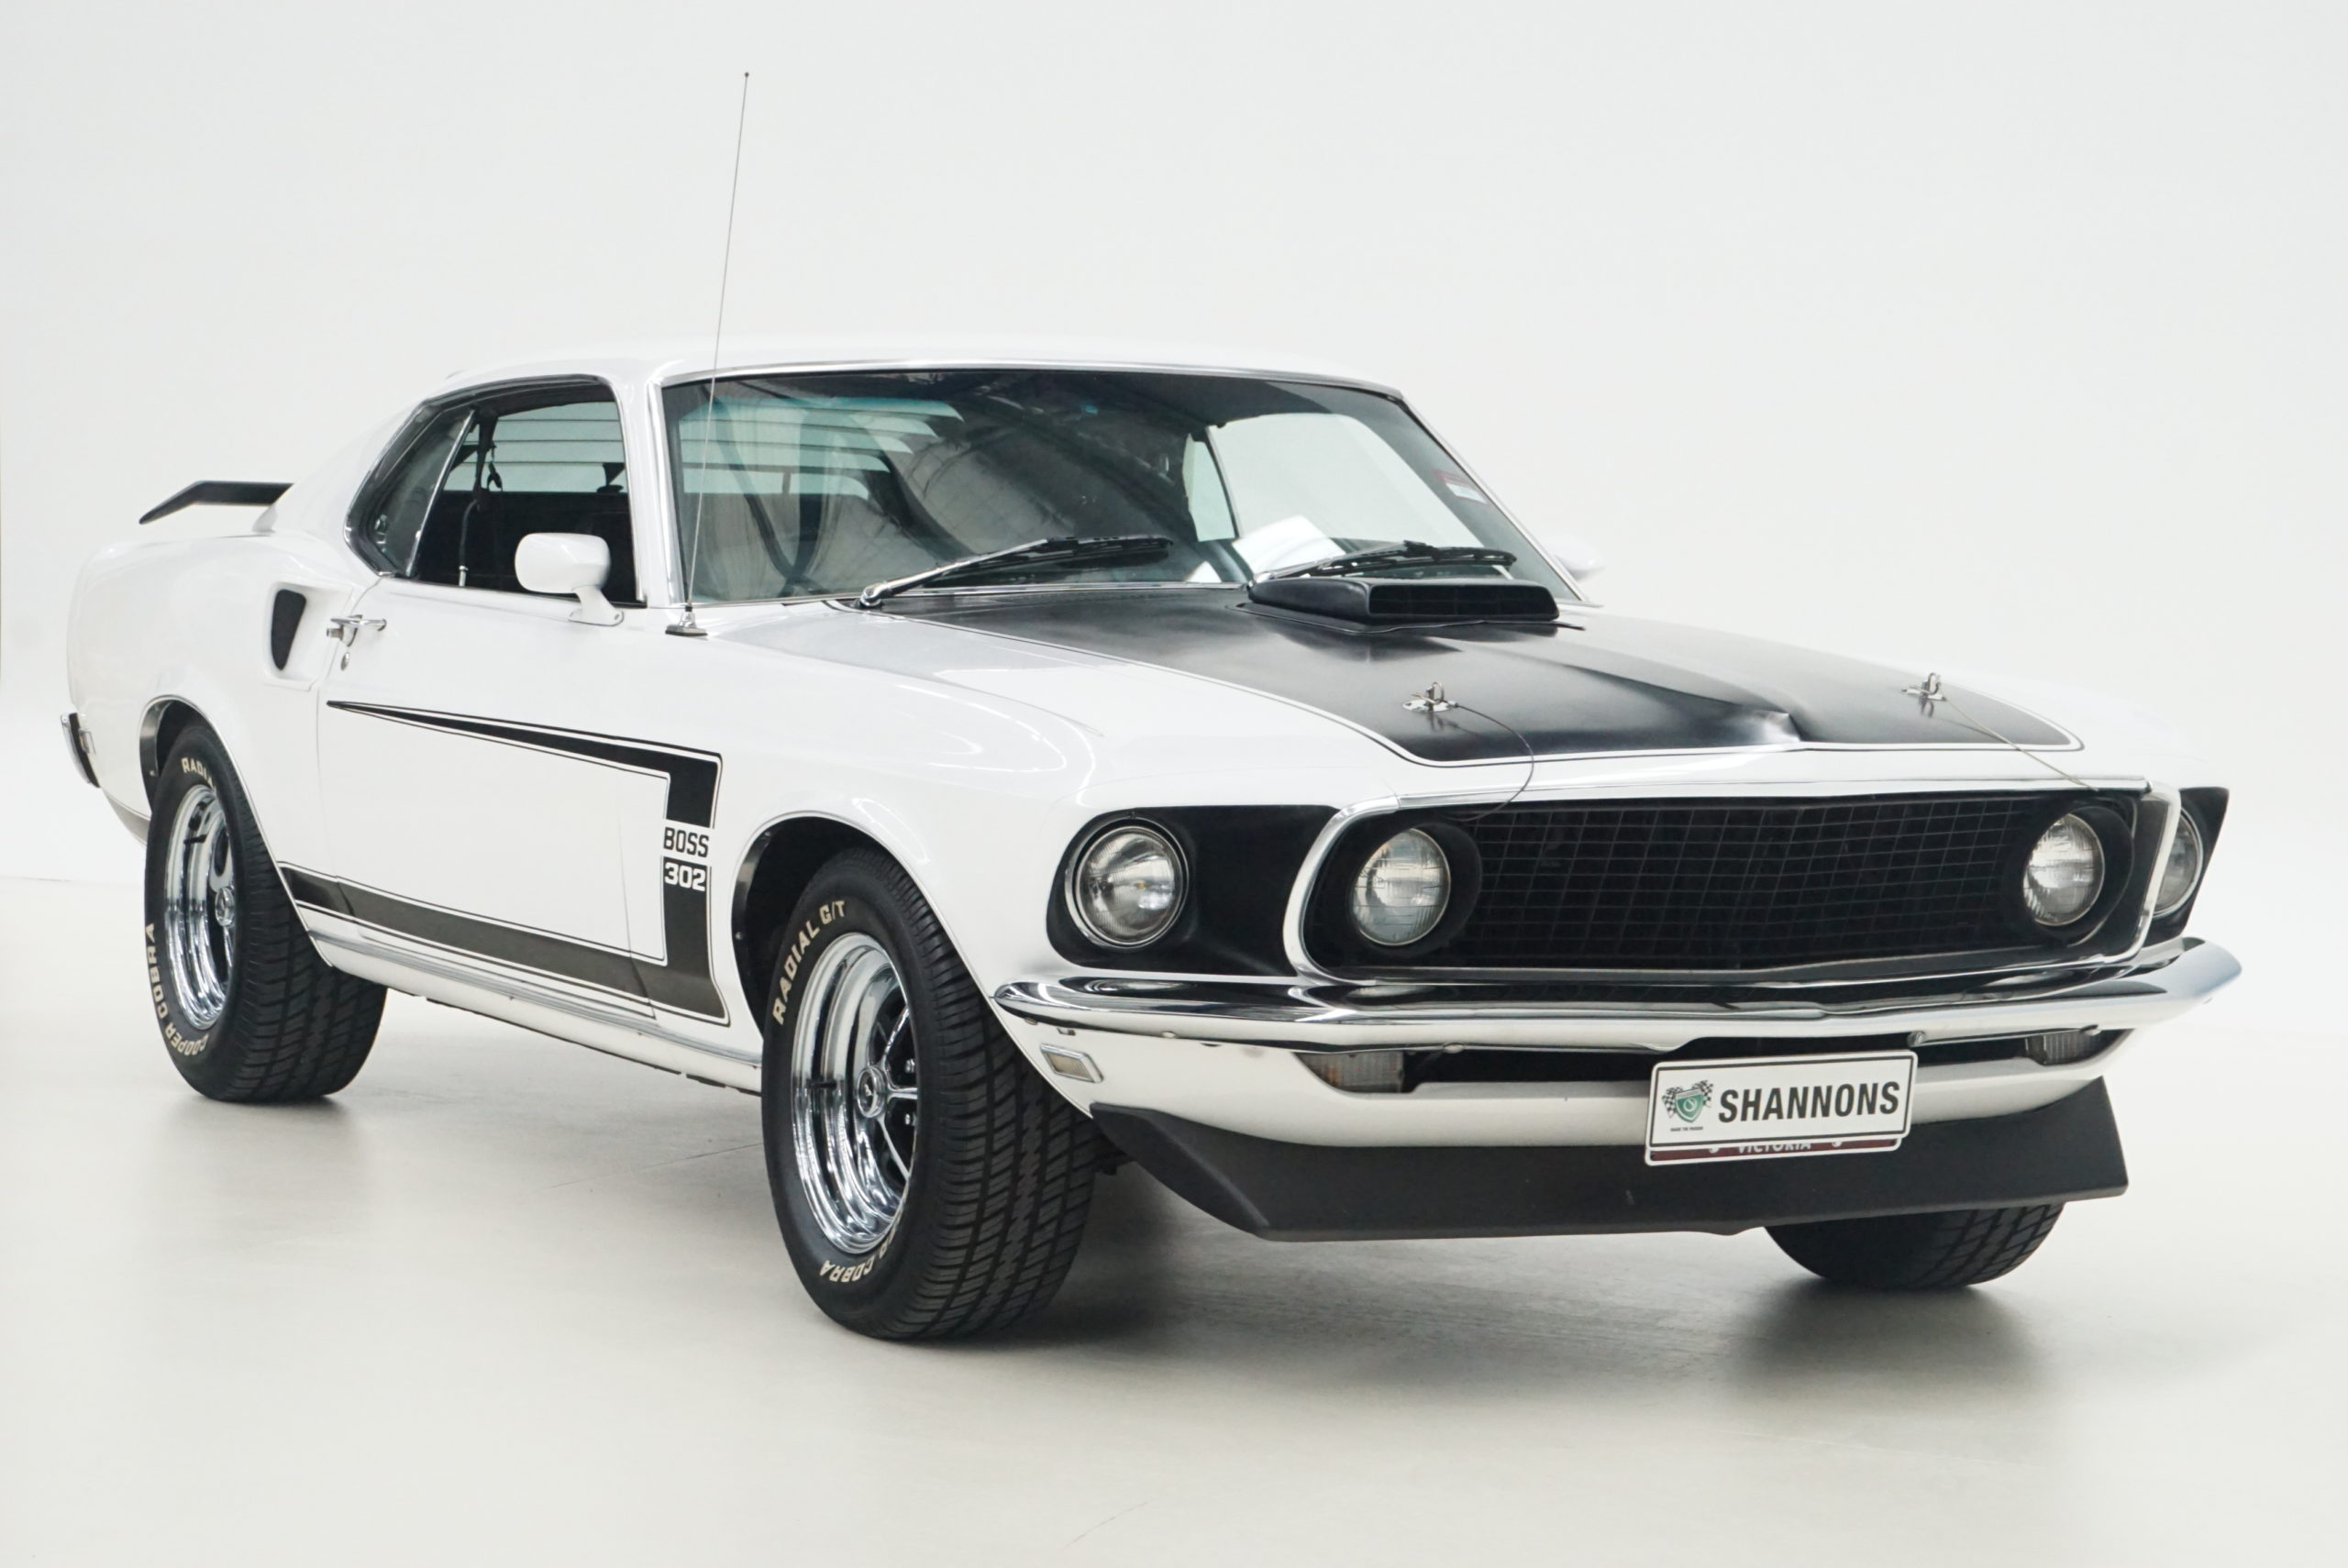 1969 Ford Mustang Boss 302 Tribute Fastback trois quarts avant droit - Shannons Auctions avril 2021.